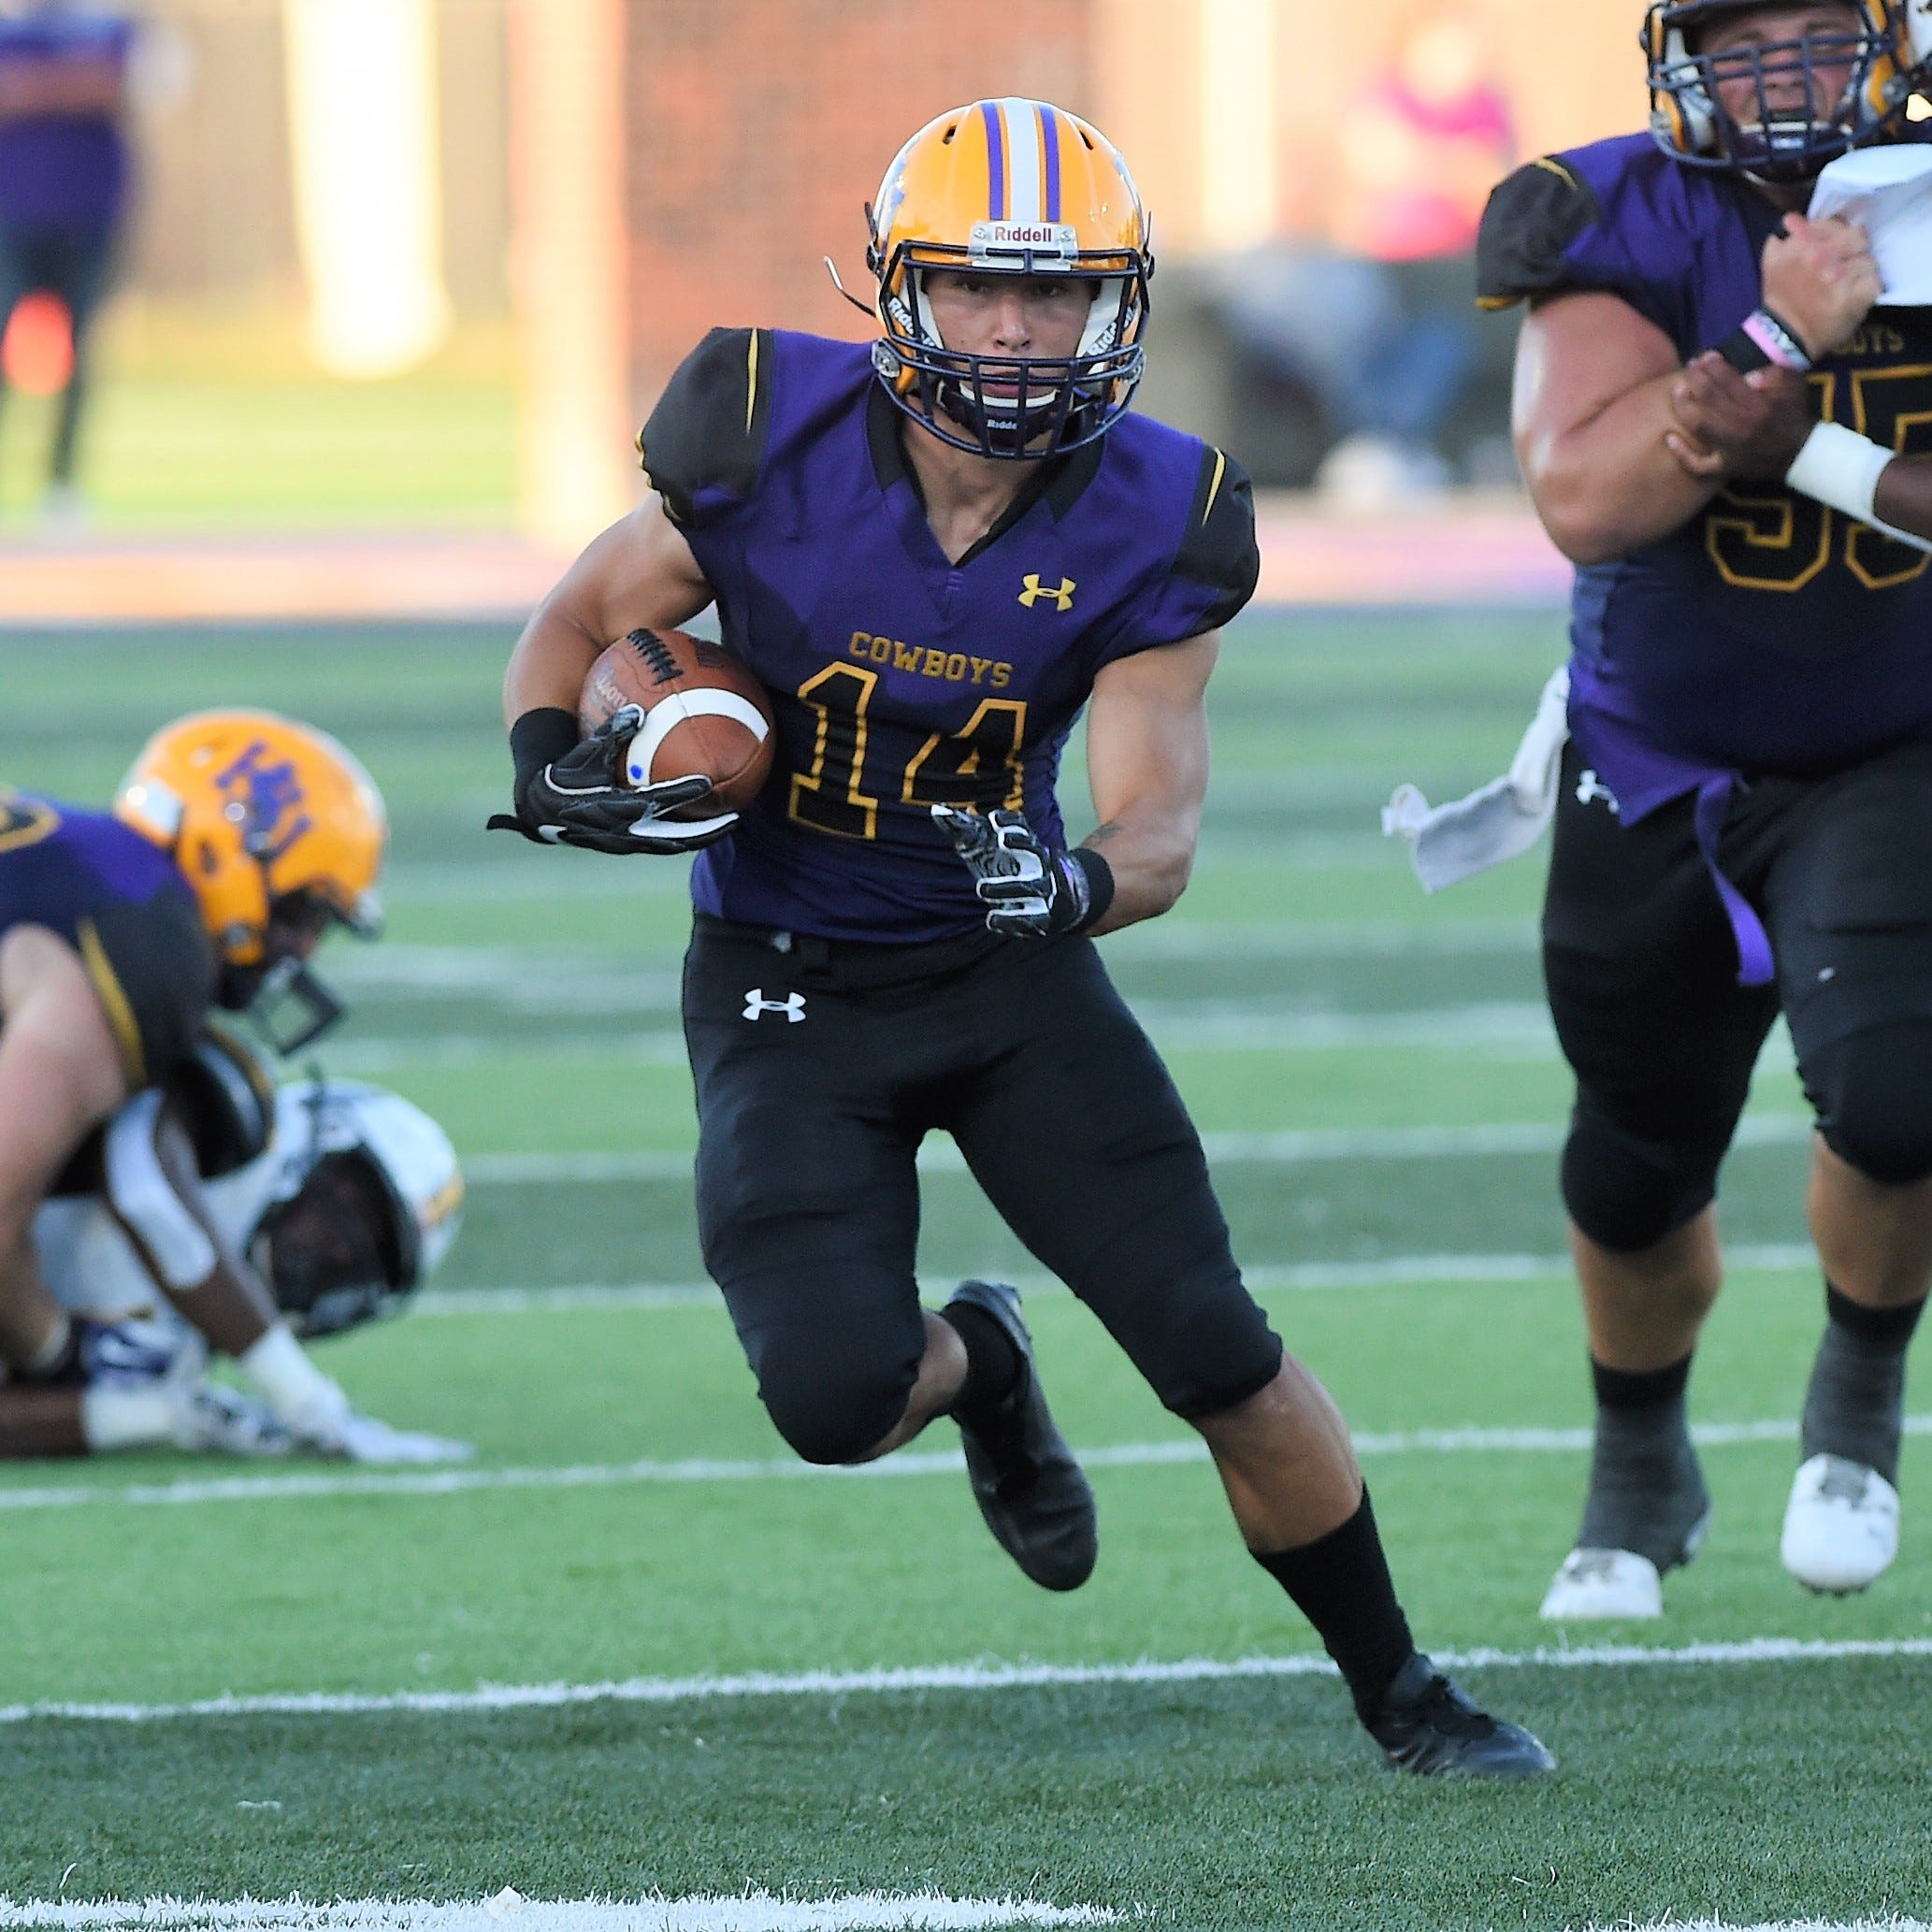 Former Coleman QB Bryson Hammonds finding ways to contribute to Hardin-Simmons football team